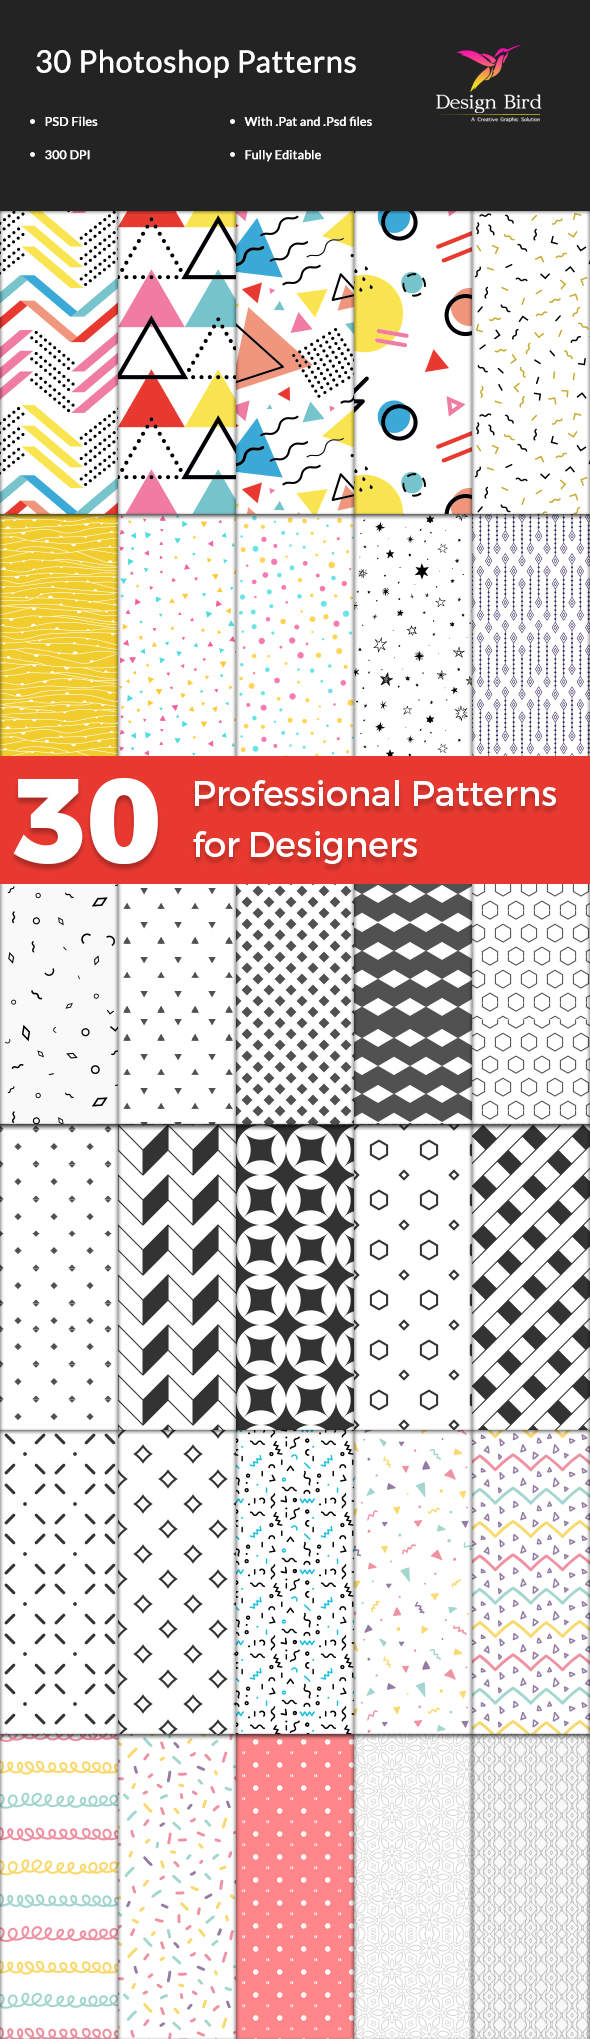 30 Professional Photoshop Patterns - Textures / Fills / Patterns Photoshop